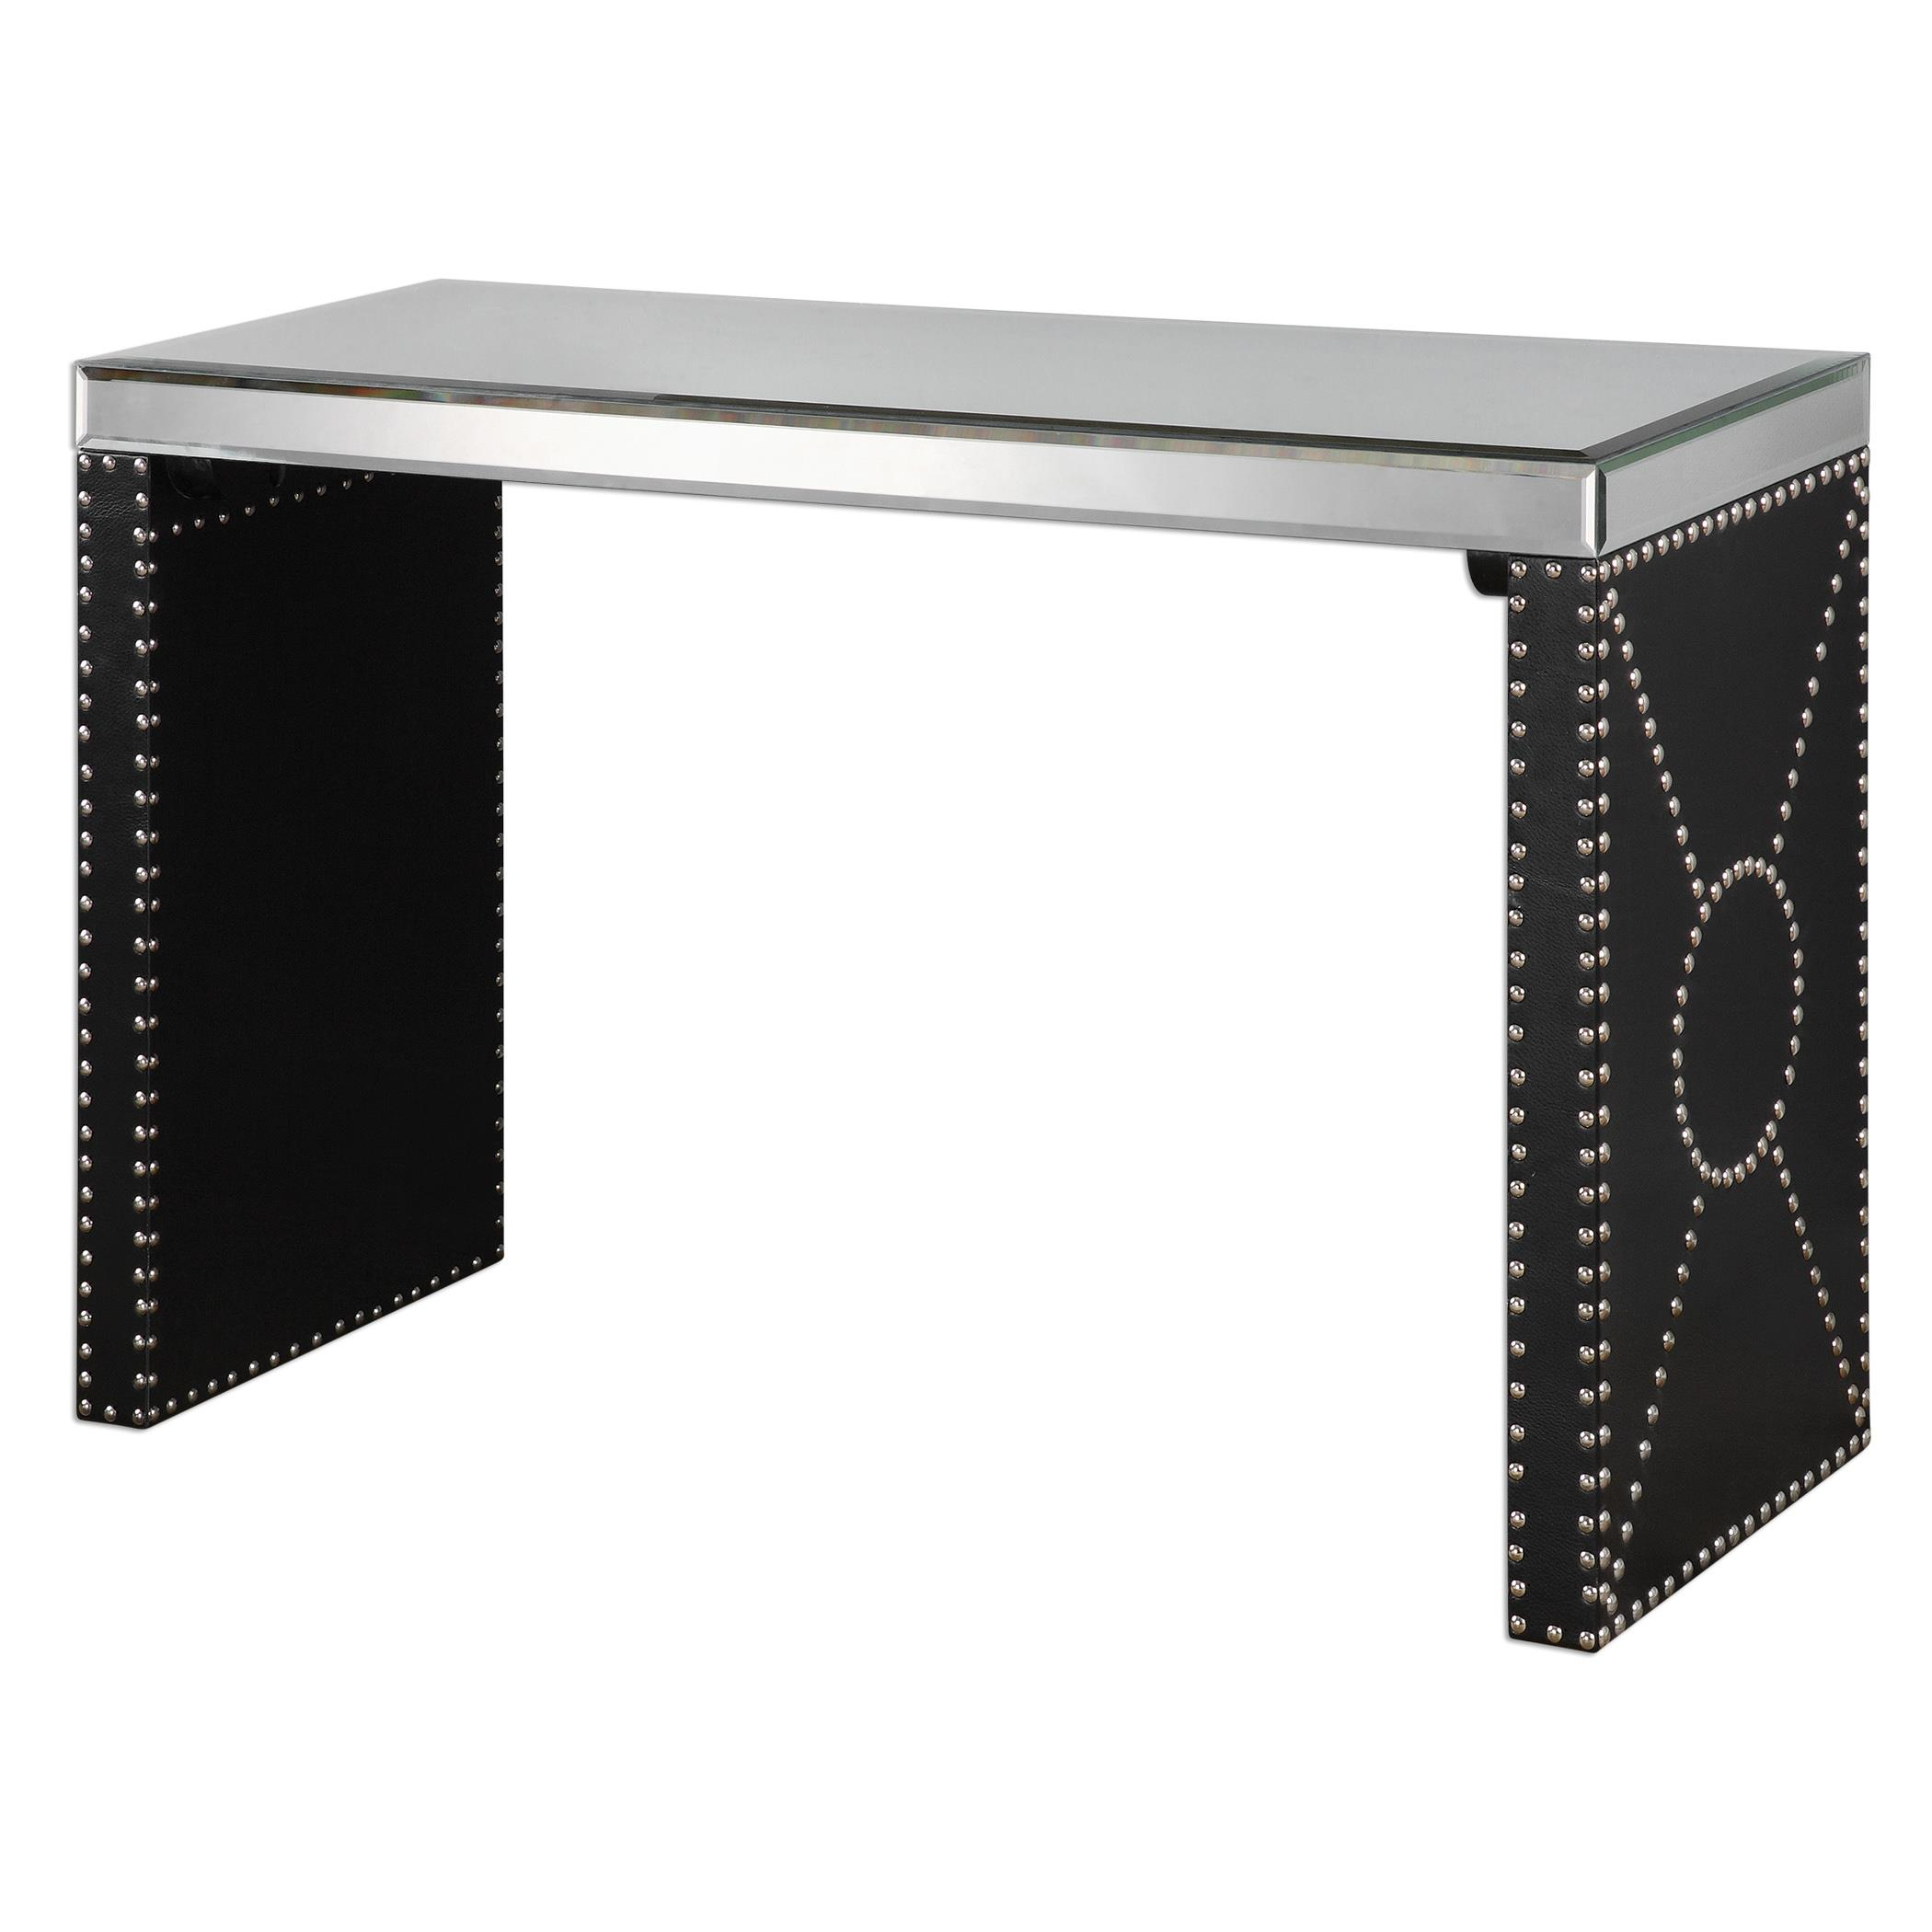 Uttermost Accent Furniture Lucero Mirrored Sofa Table - Item Number: 24530